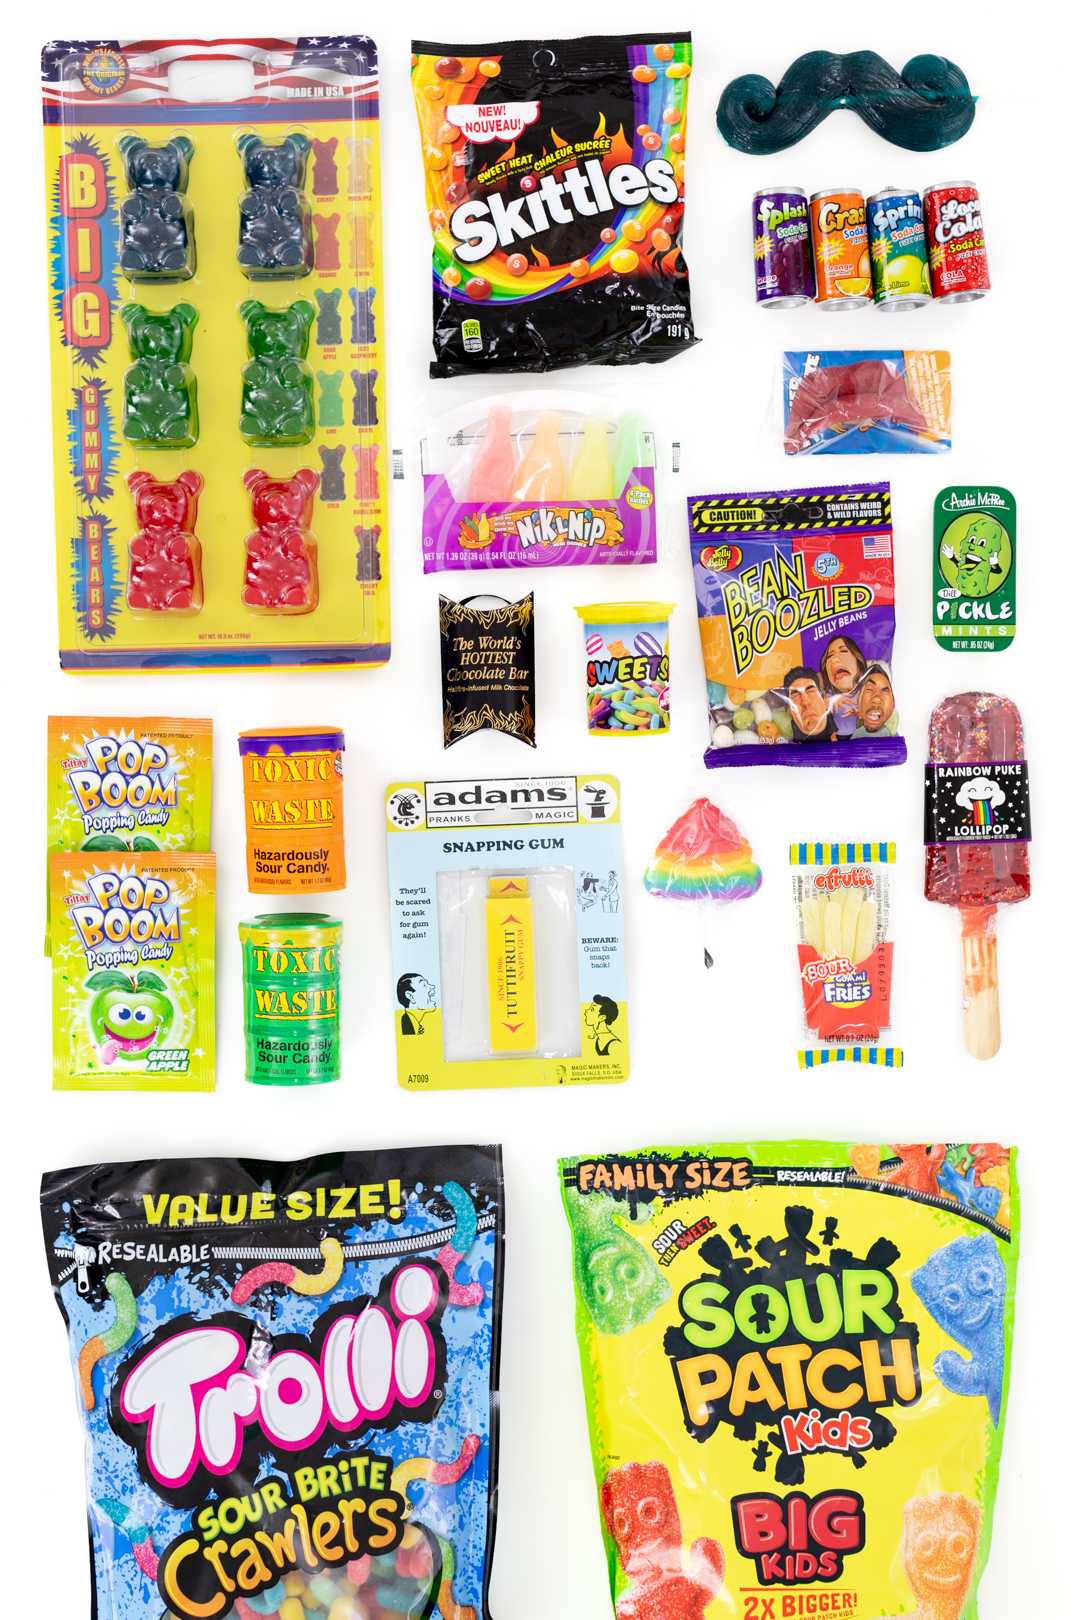 candy in packages that are sour, funny and gross.